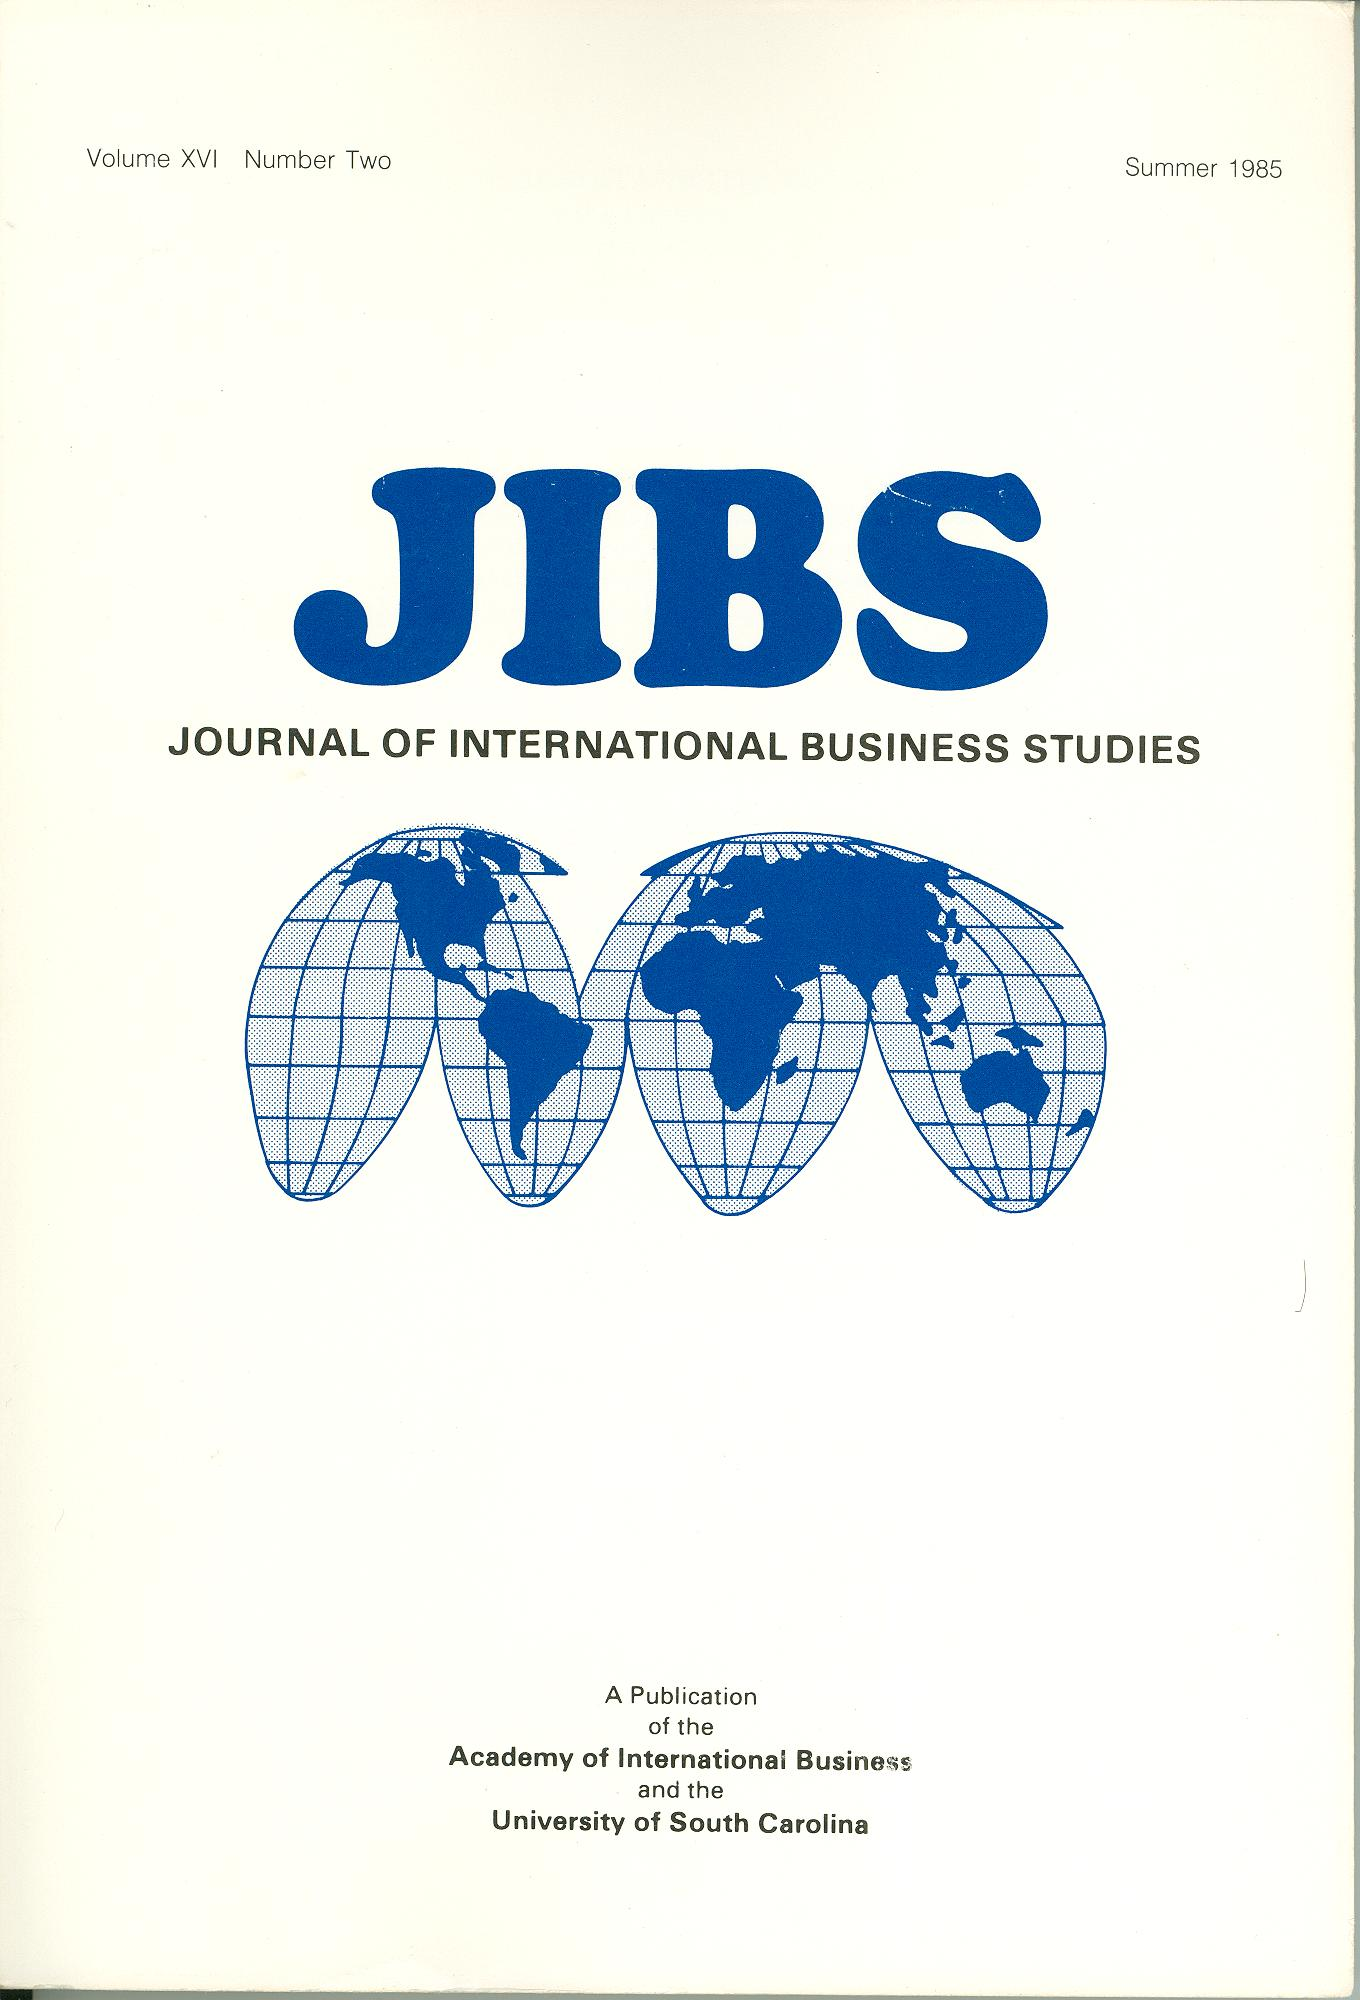 Cover design from a 1985 issue of JIBS